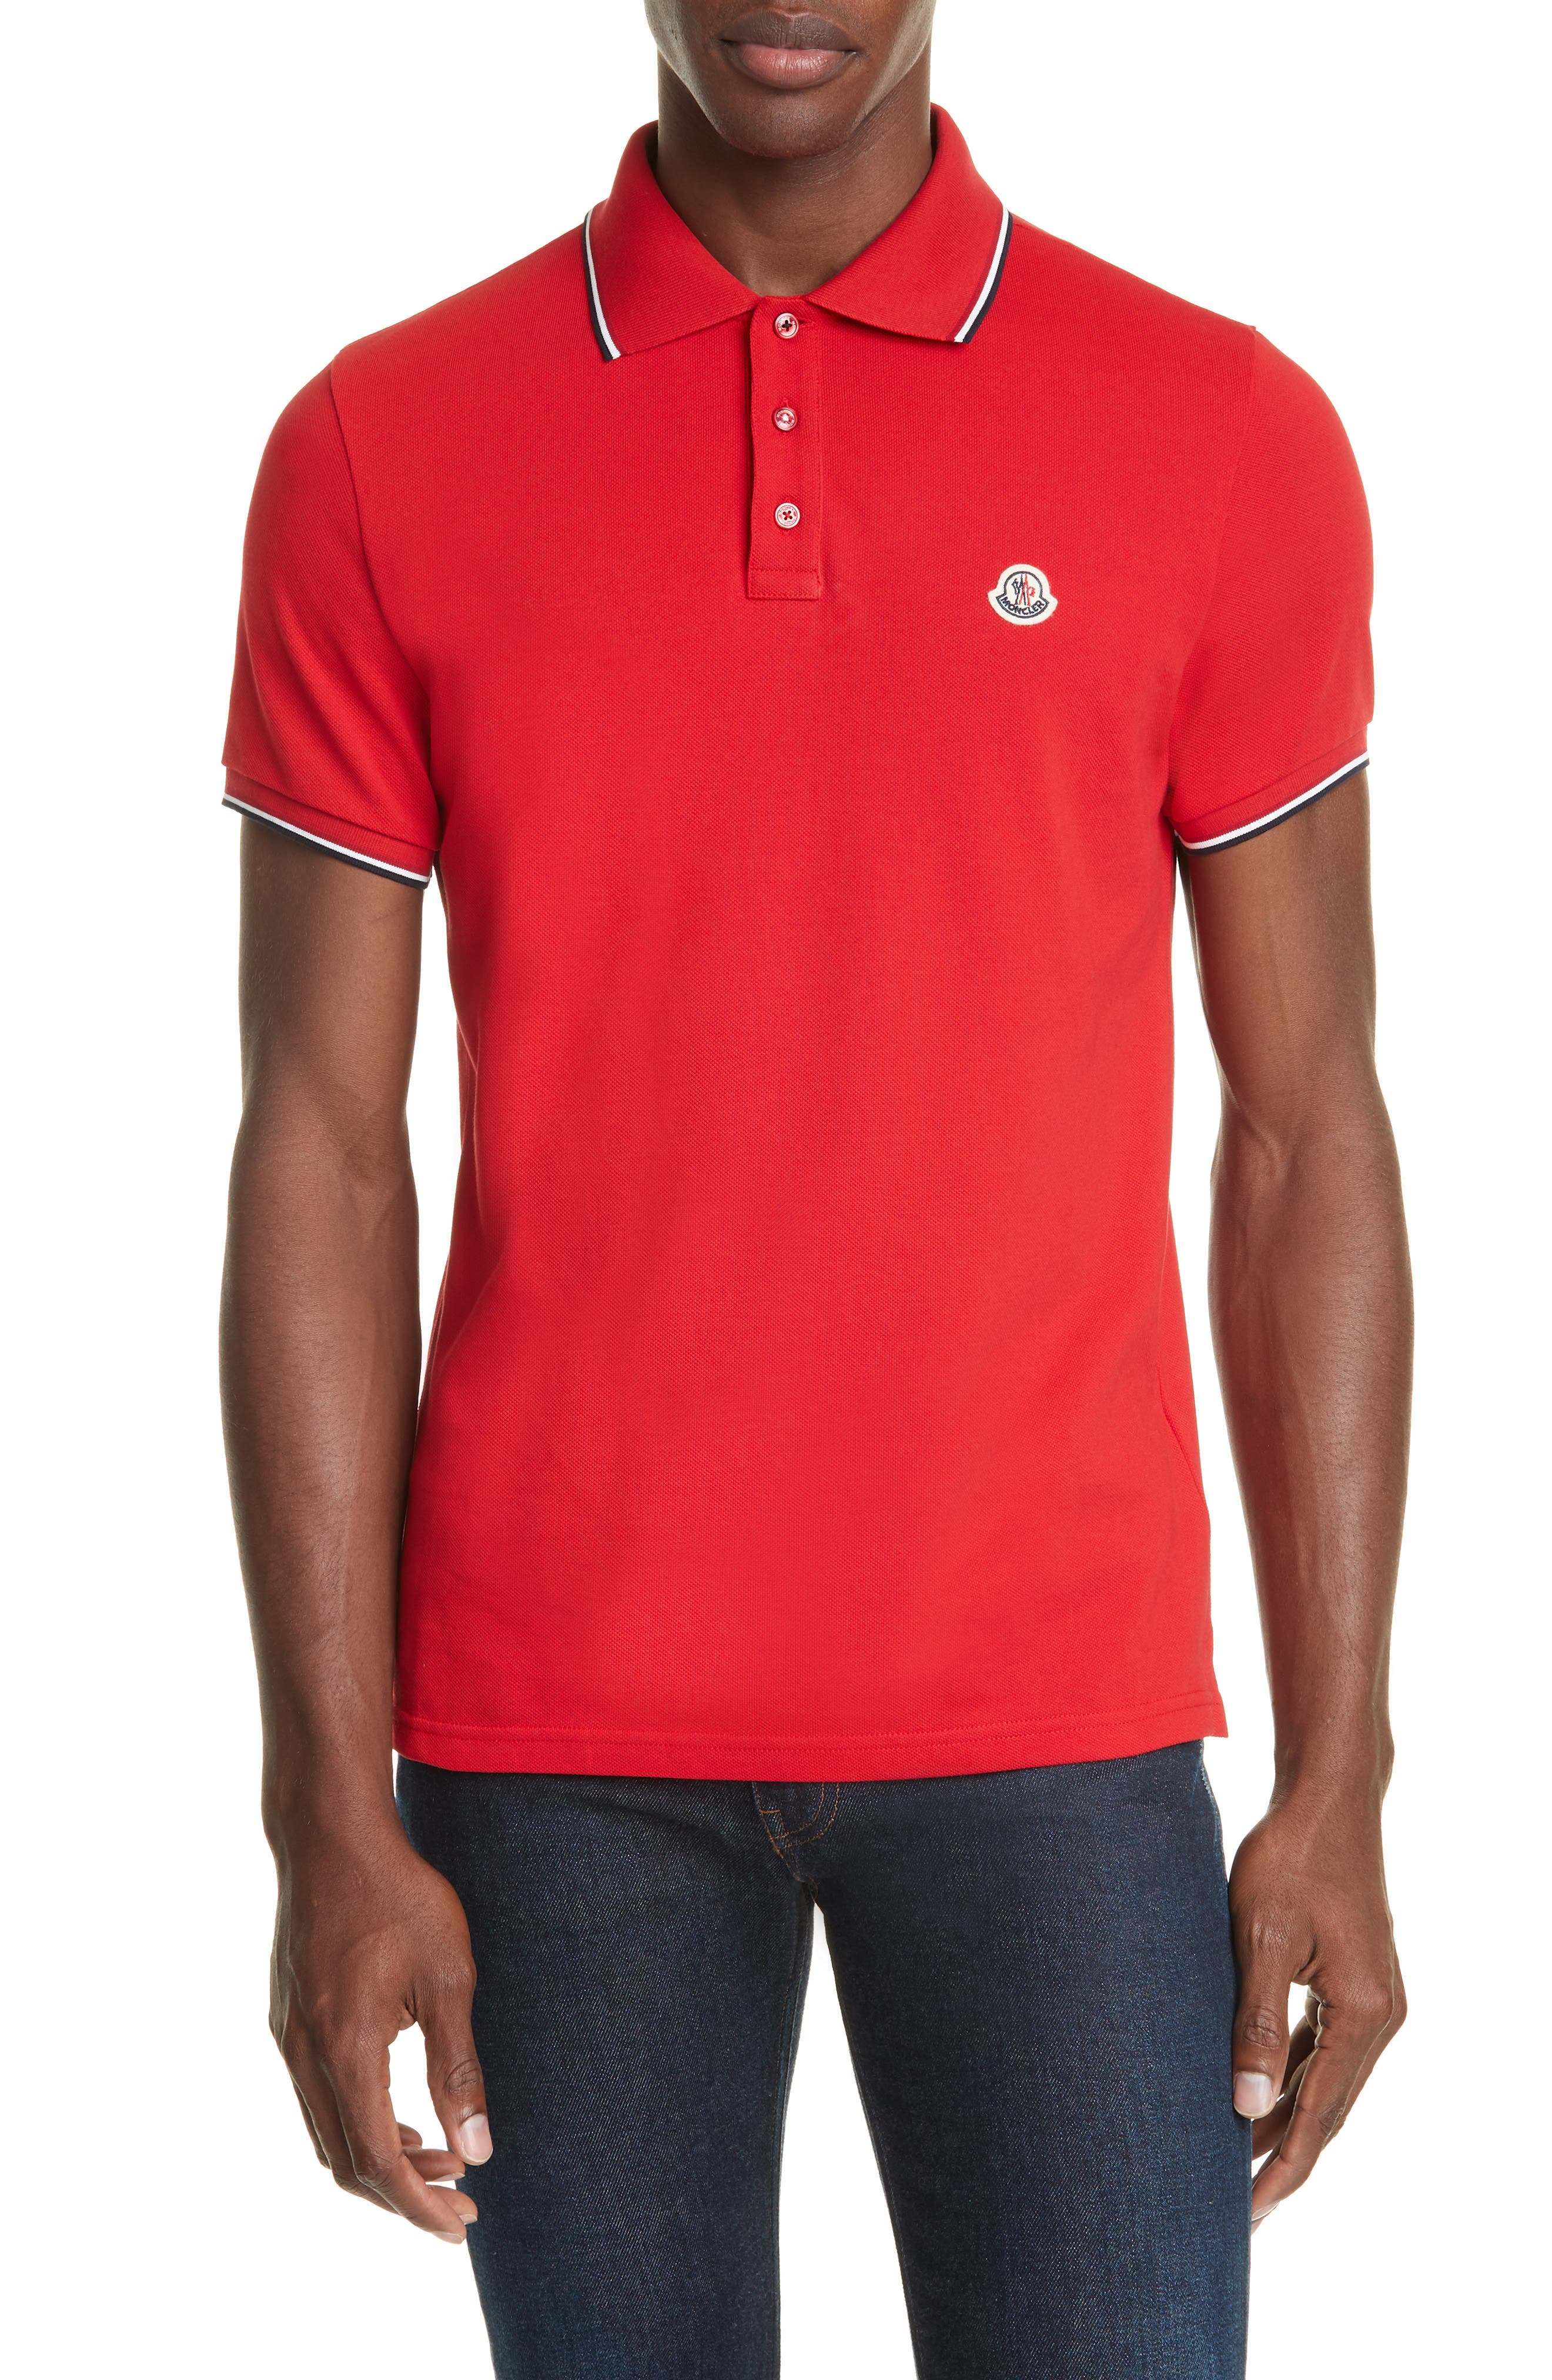 Men's Moncler Polo Shirts | Nordstrom